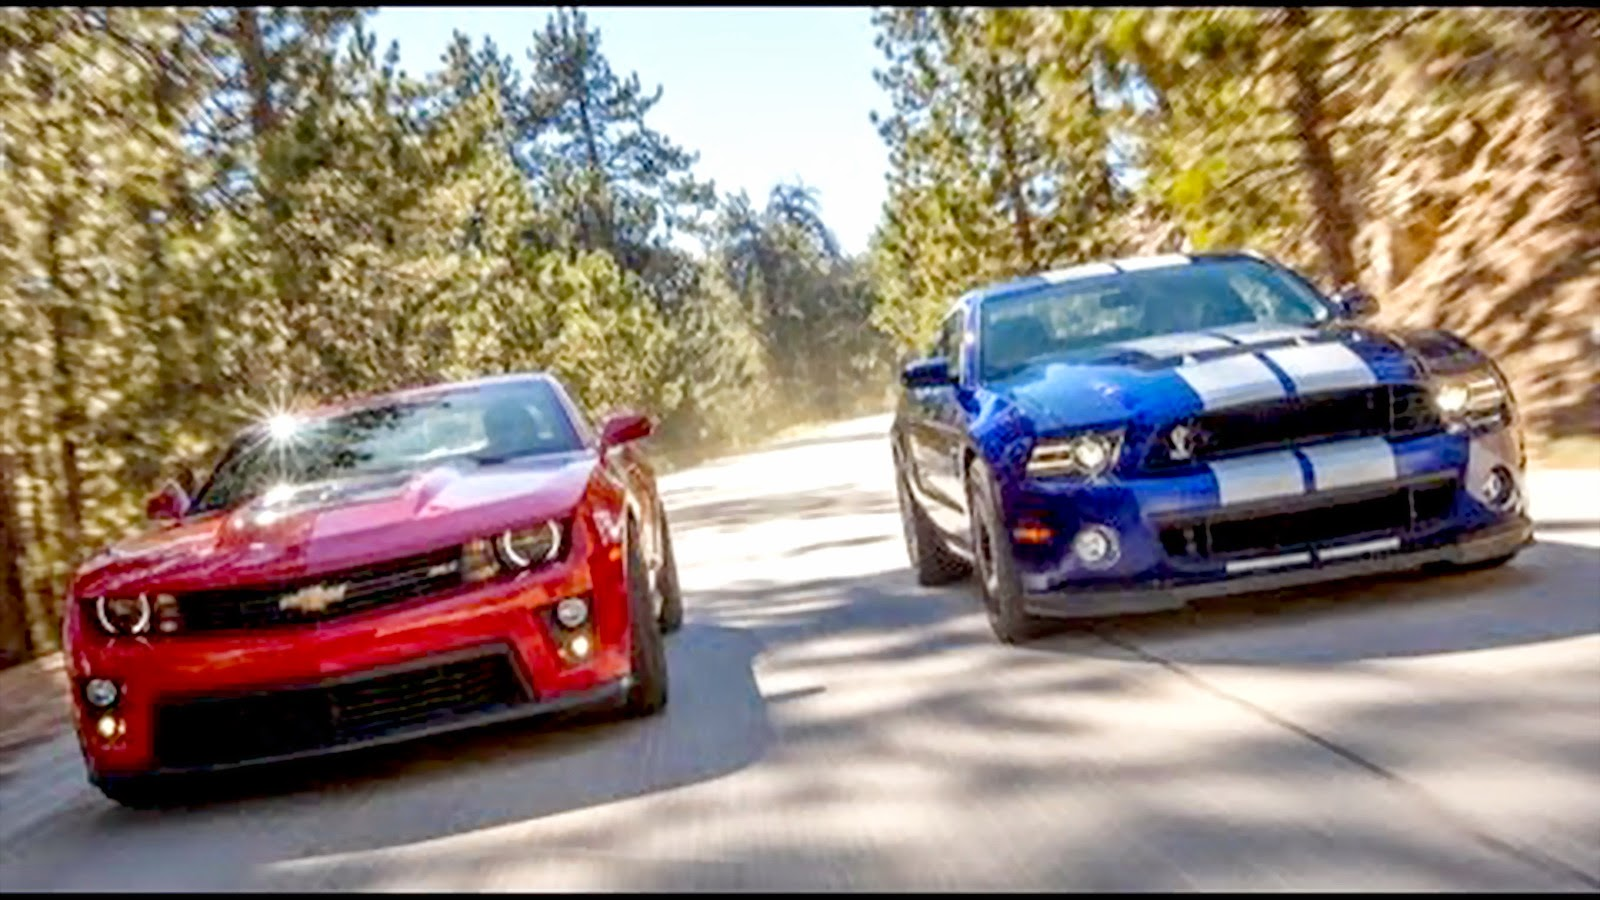 2014 ford mustang shelby gt500 vs camaro zl1. Black Bedroom Furniture Sets. Home Design Ideas